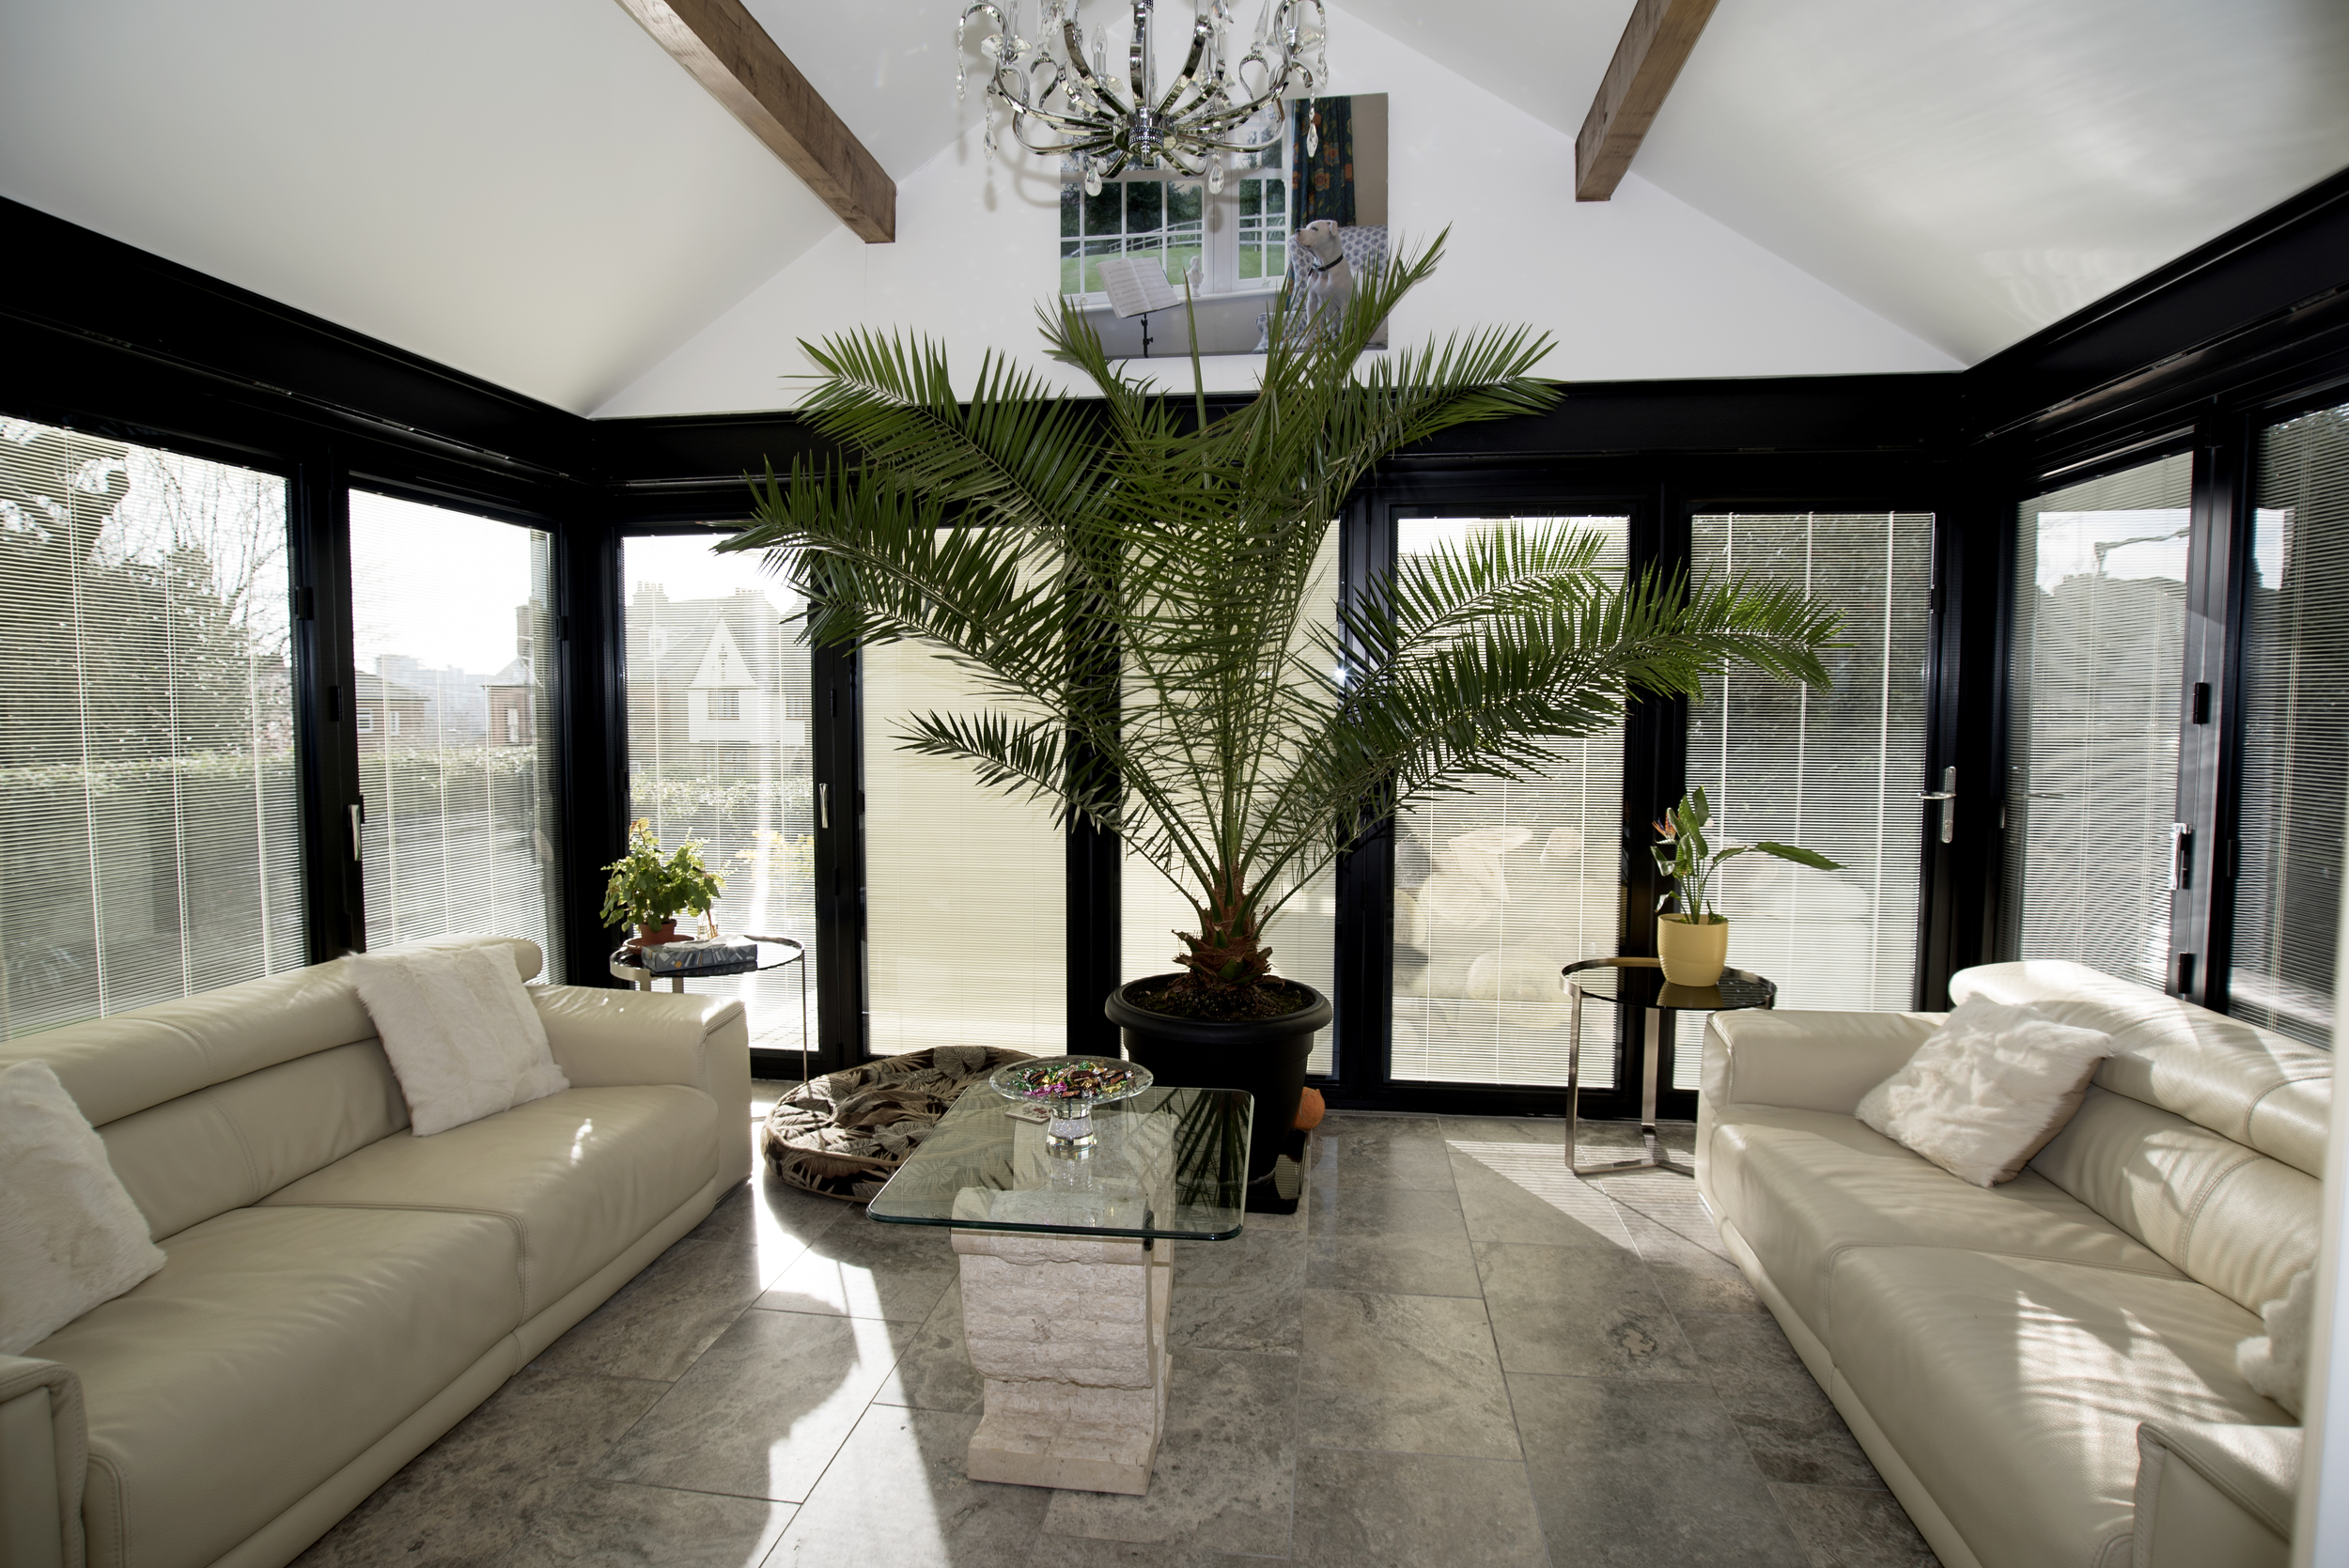 Conservatories   Create the extra space you've always wanted, in a range of designs and roof glazing options  Freephone 0800 881 5640   Learn more